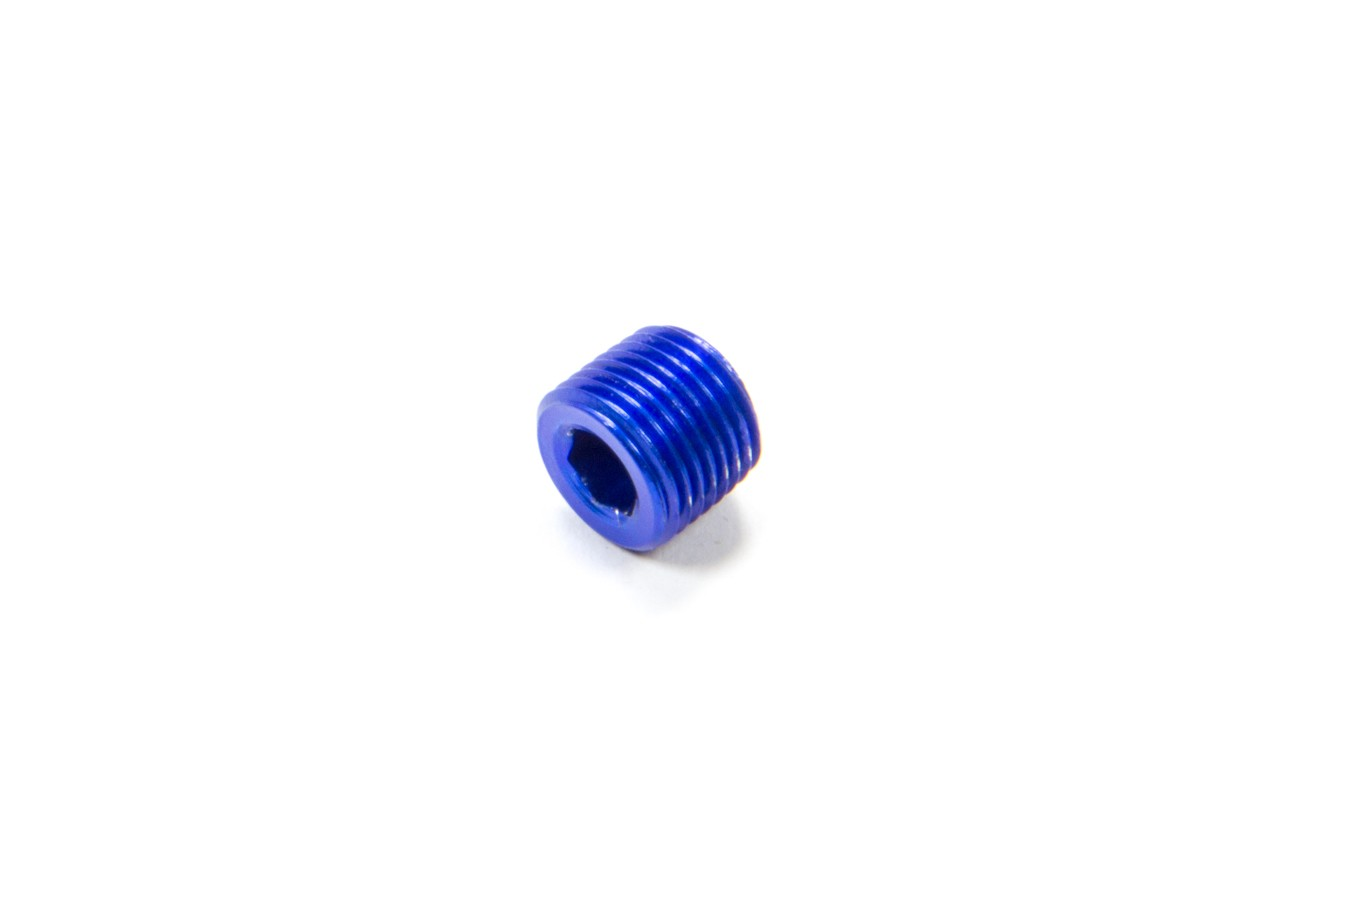 Fragola 493202 Fitting, Plug, 1/8 in NPT, Allen Head, Aluminum, Blue Anodize, Each